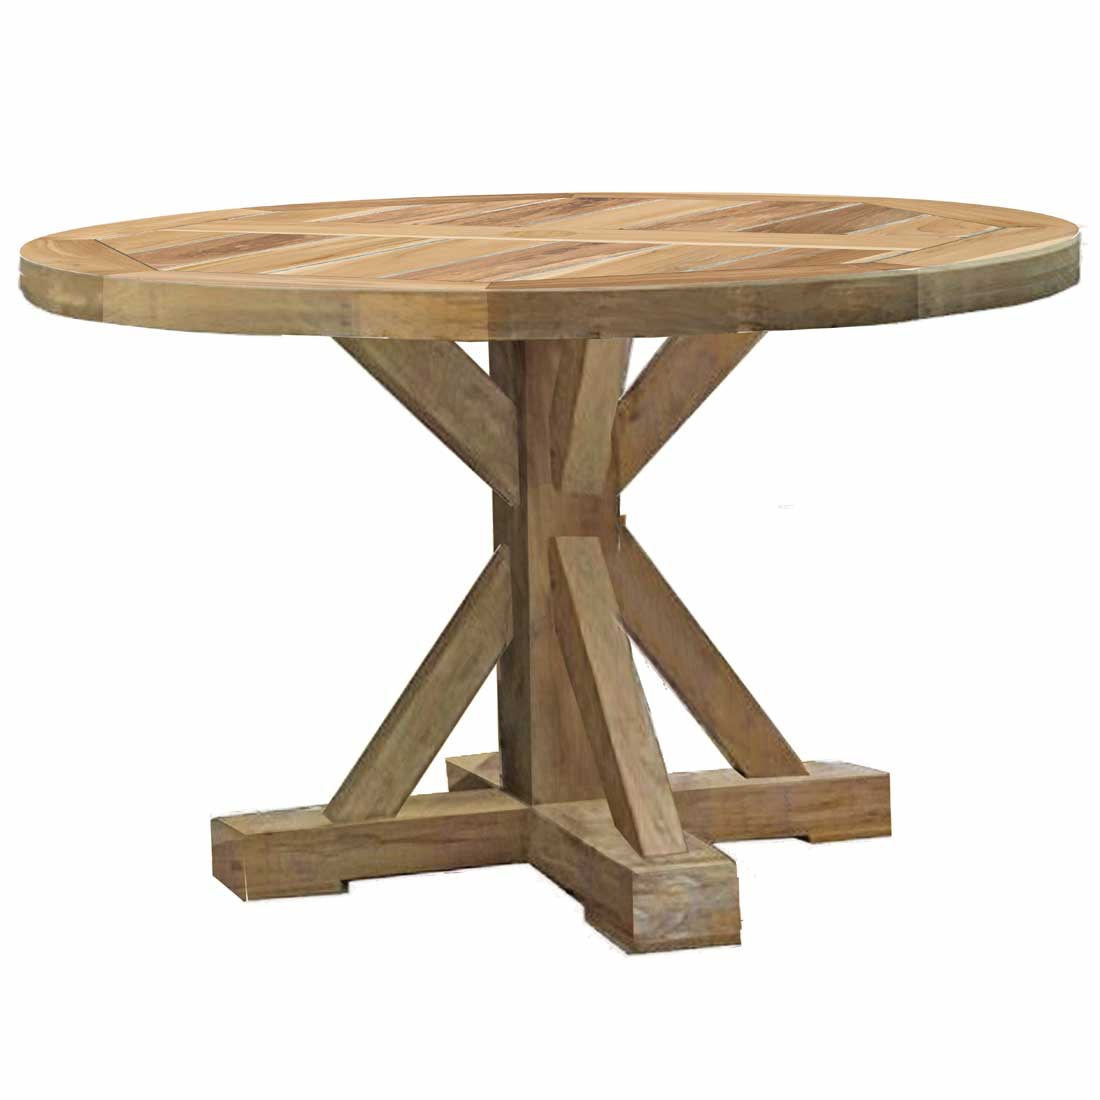 Outdoor round dining table - Modena Teak Round Dining Table